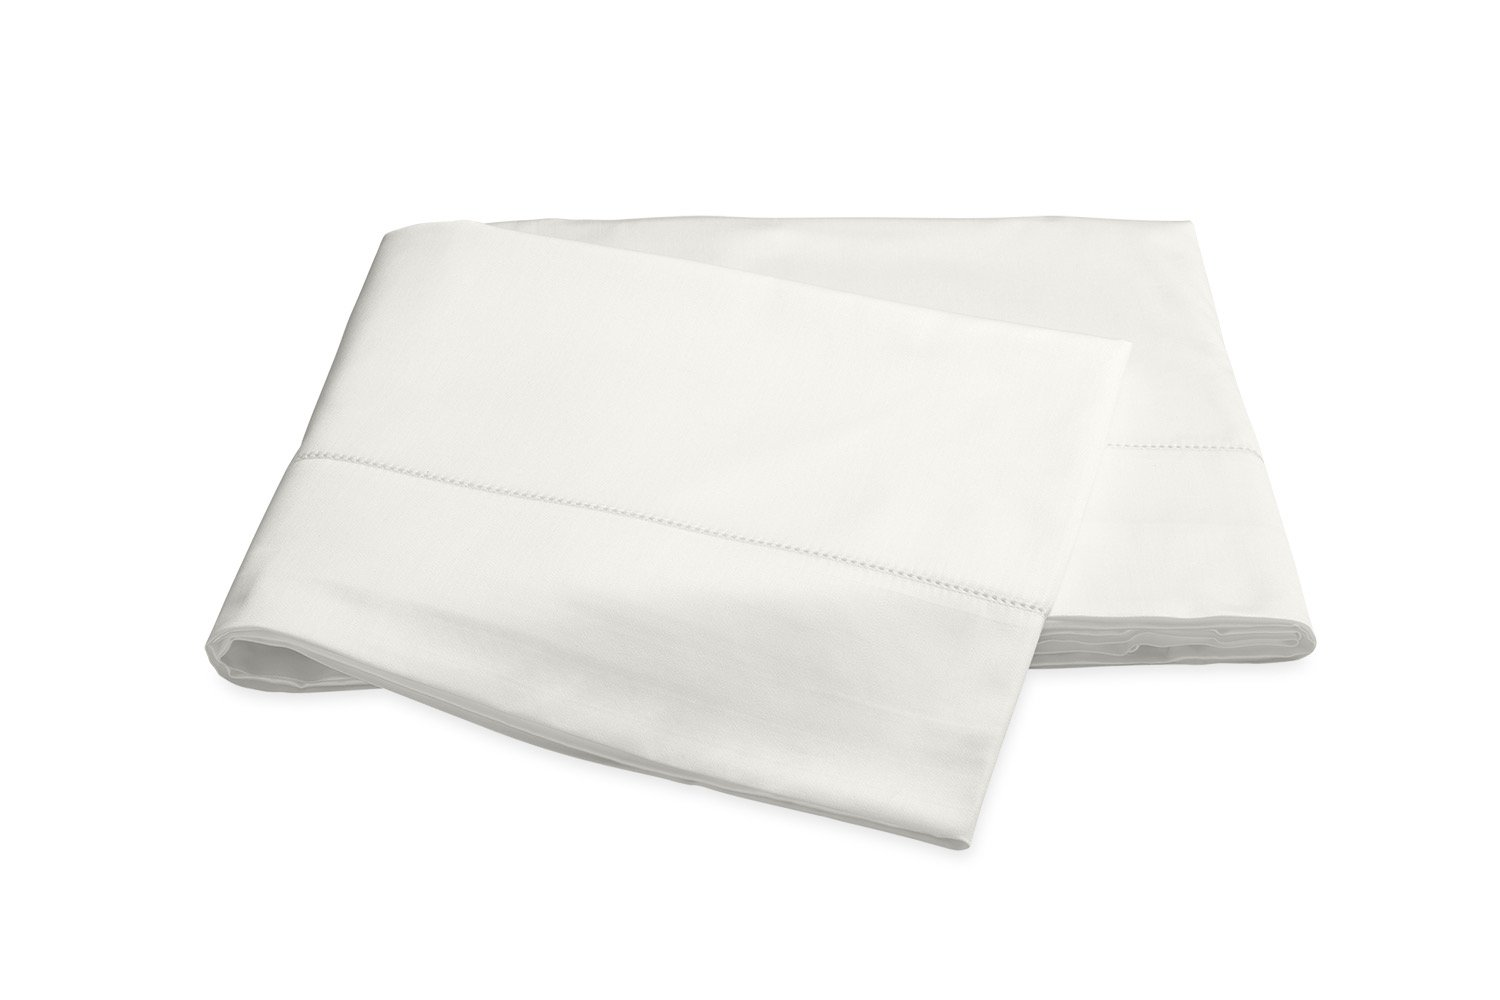 Nocturne Hemstitch Bone Flat Sheet | Matouk Sateen Bedding